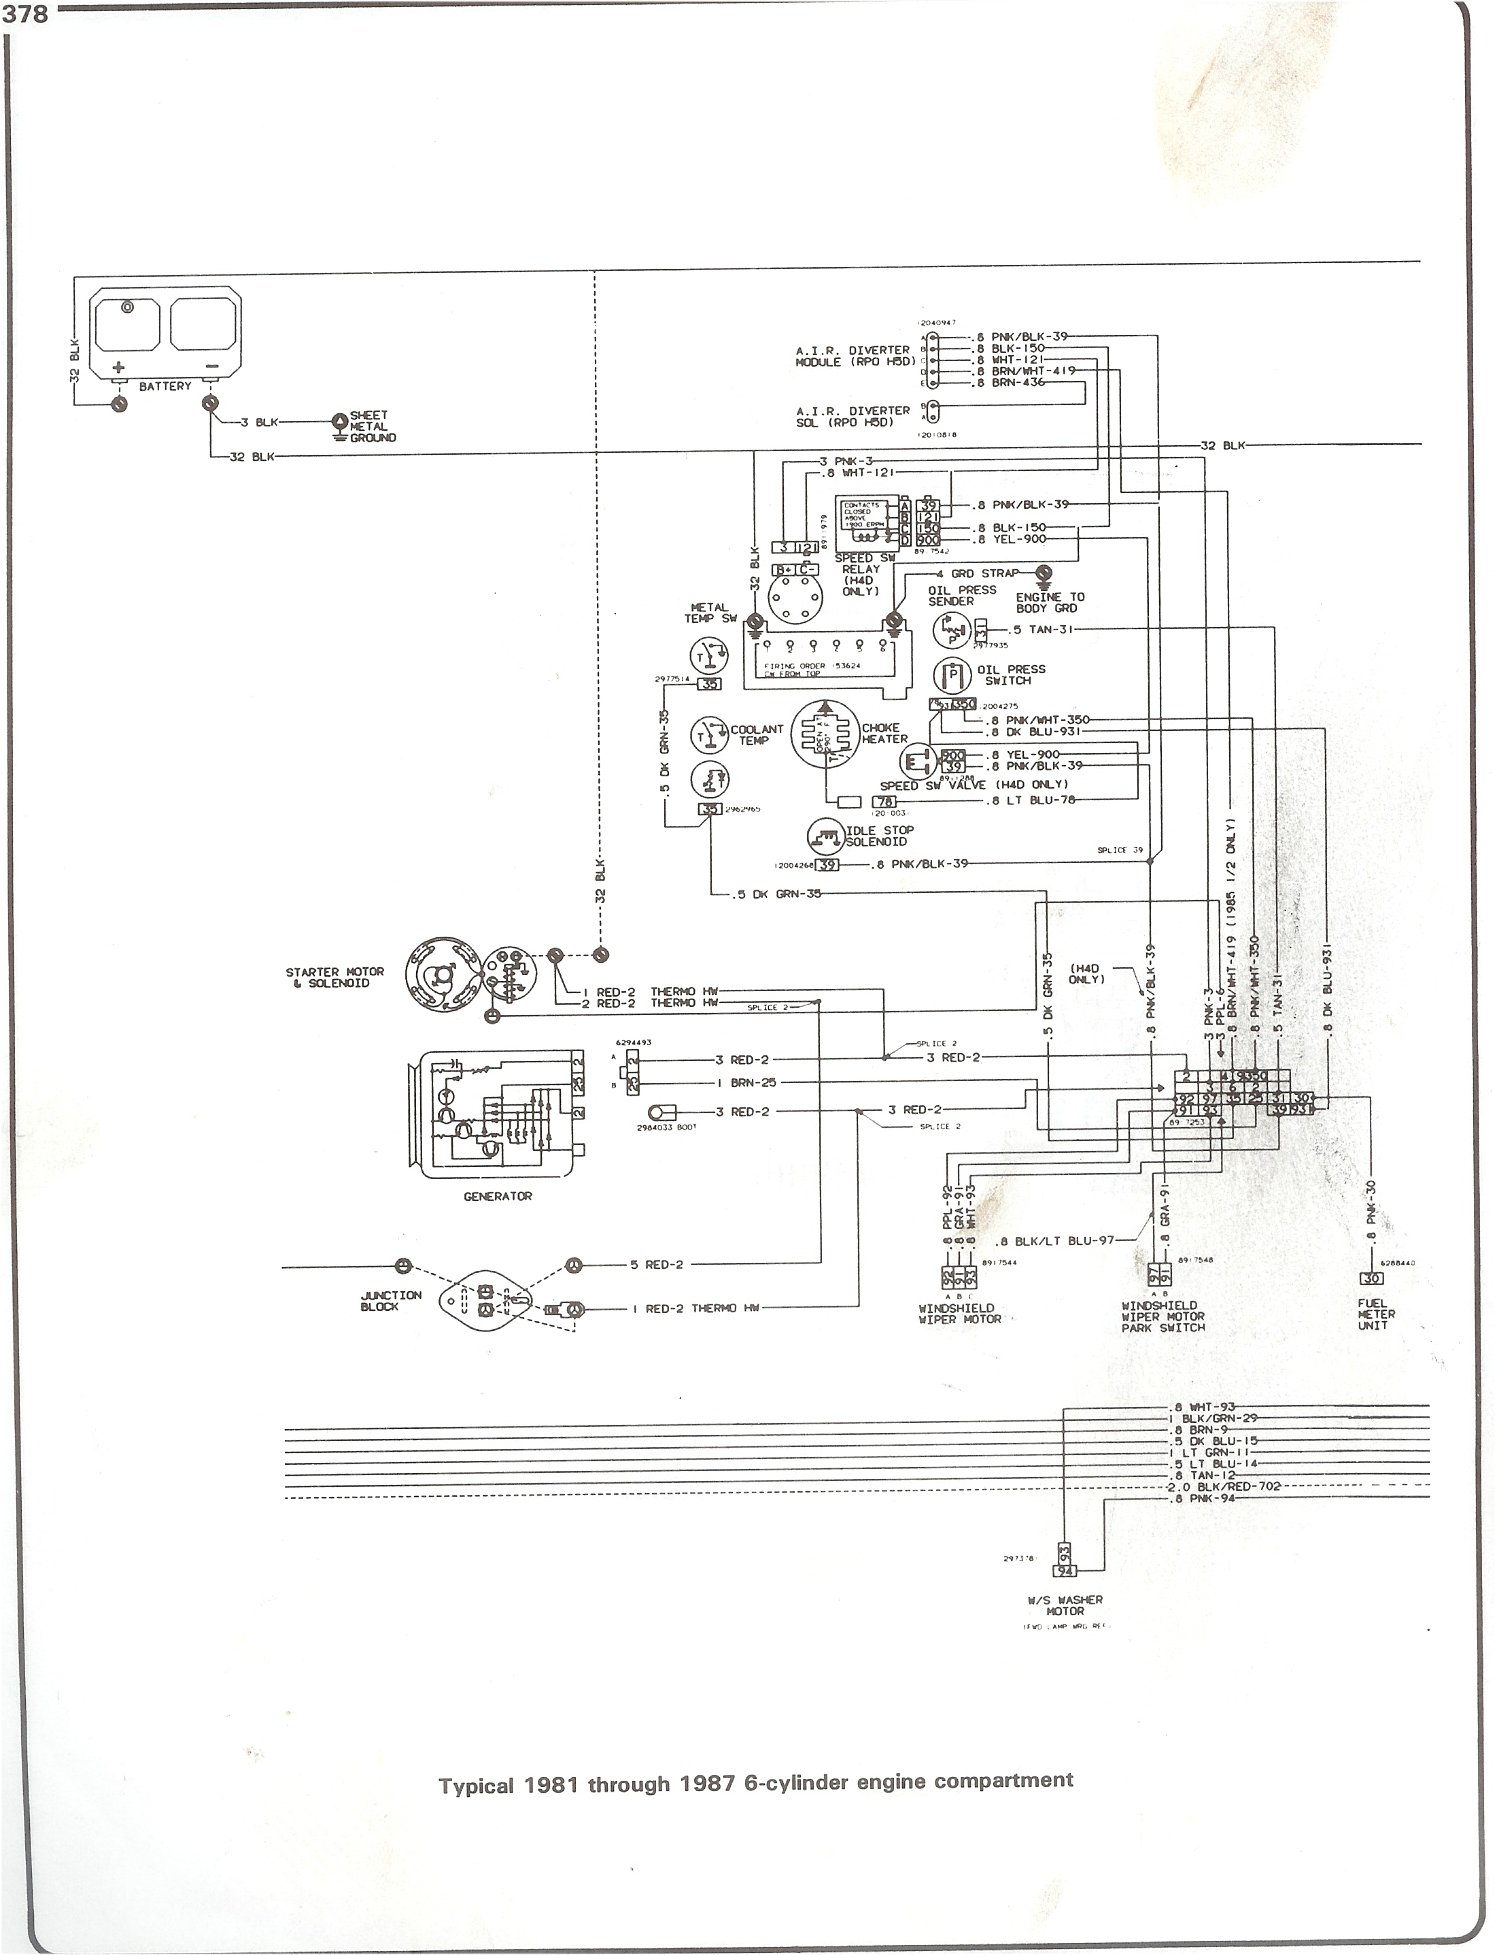 [WRG-7792] 1996 Chevy Truck Ignition Switch Wiring Diagram